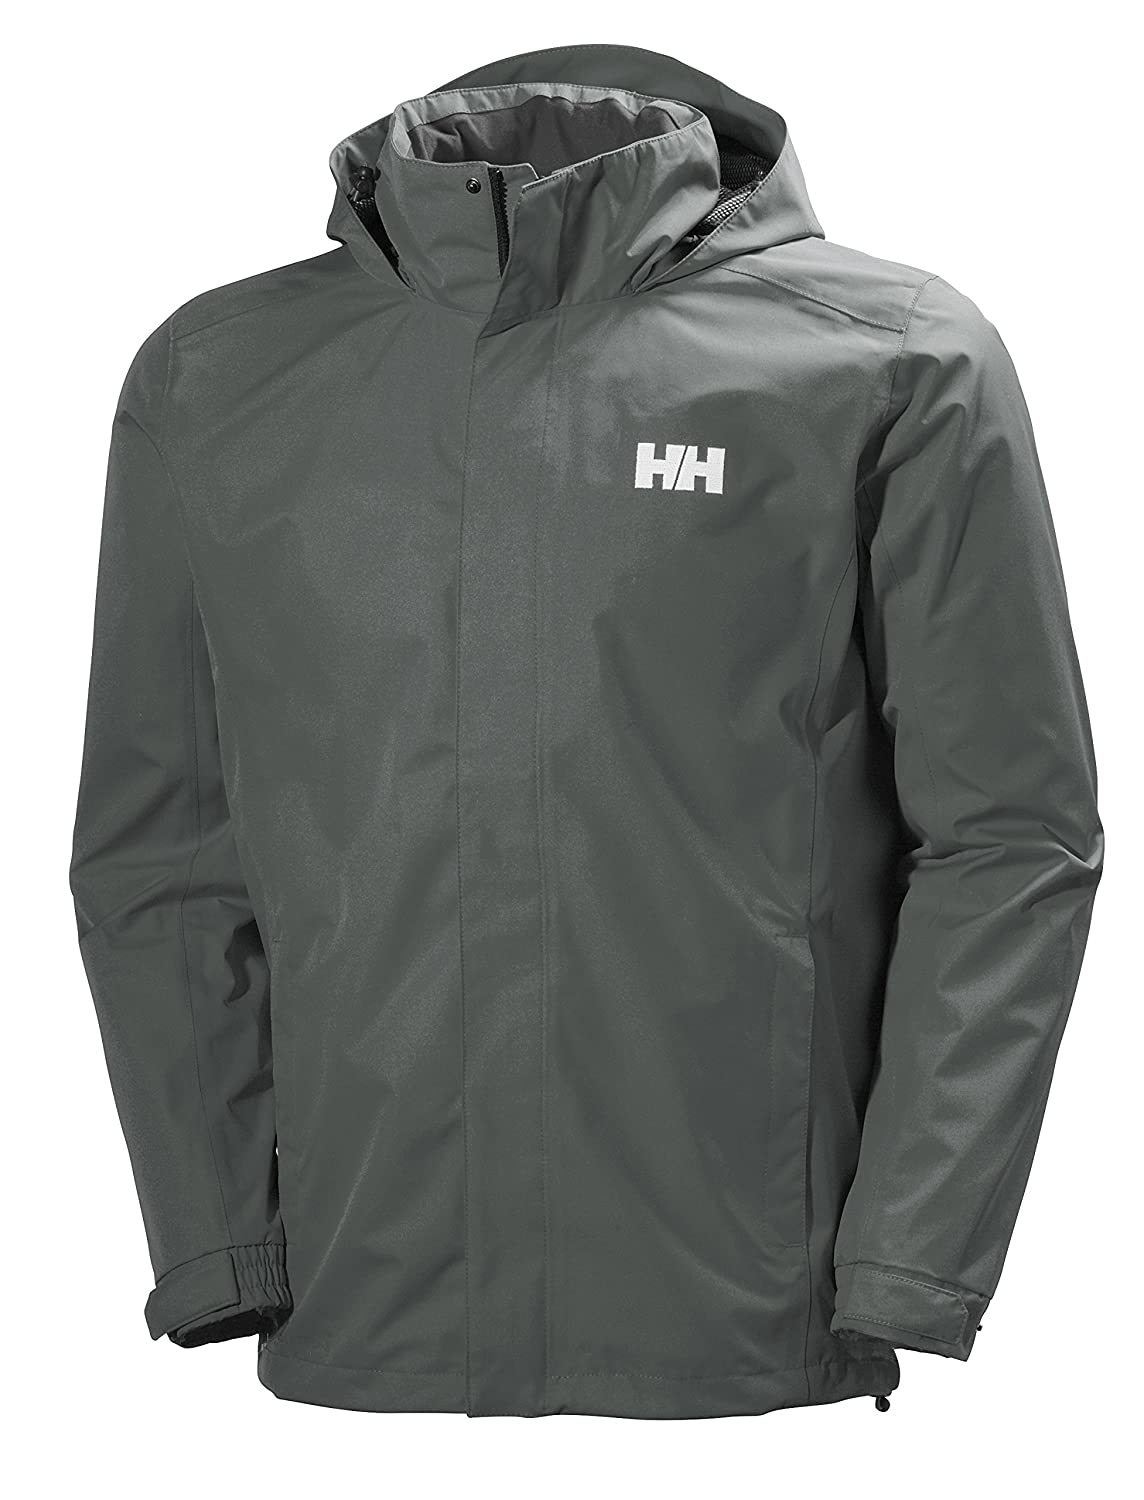 Helly Hansen Men's Dubliner Shell Jacket, Rock, Large 62643